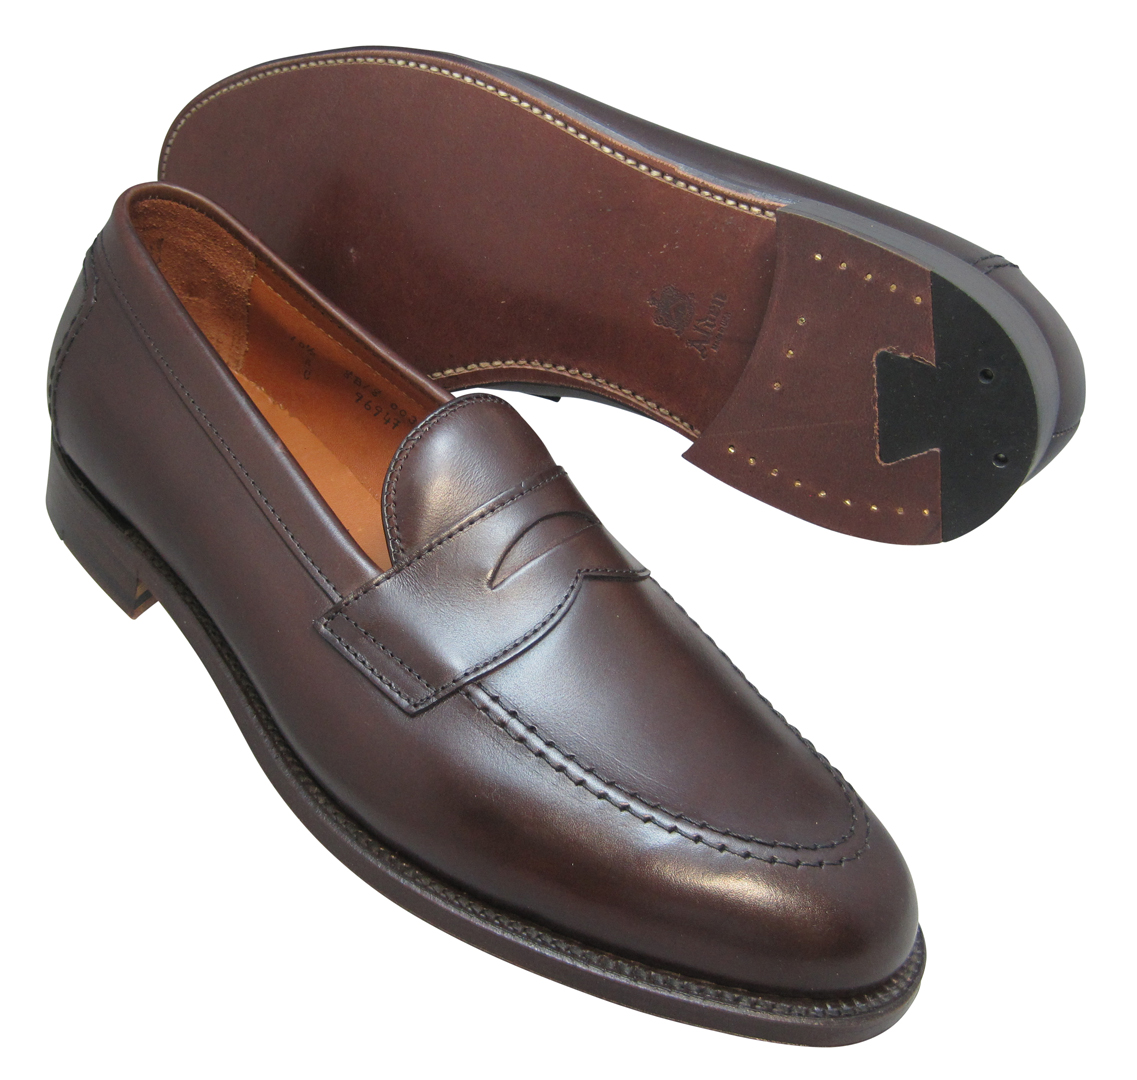 8bd20736abdb Alden Penny Loafer Dark Brown Soft Calfskin  9694F. Tap to expand